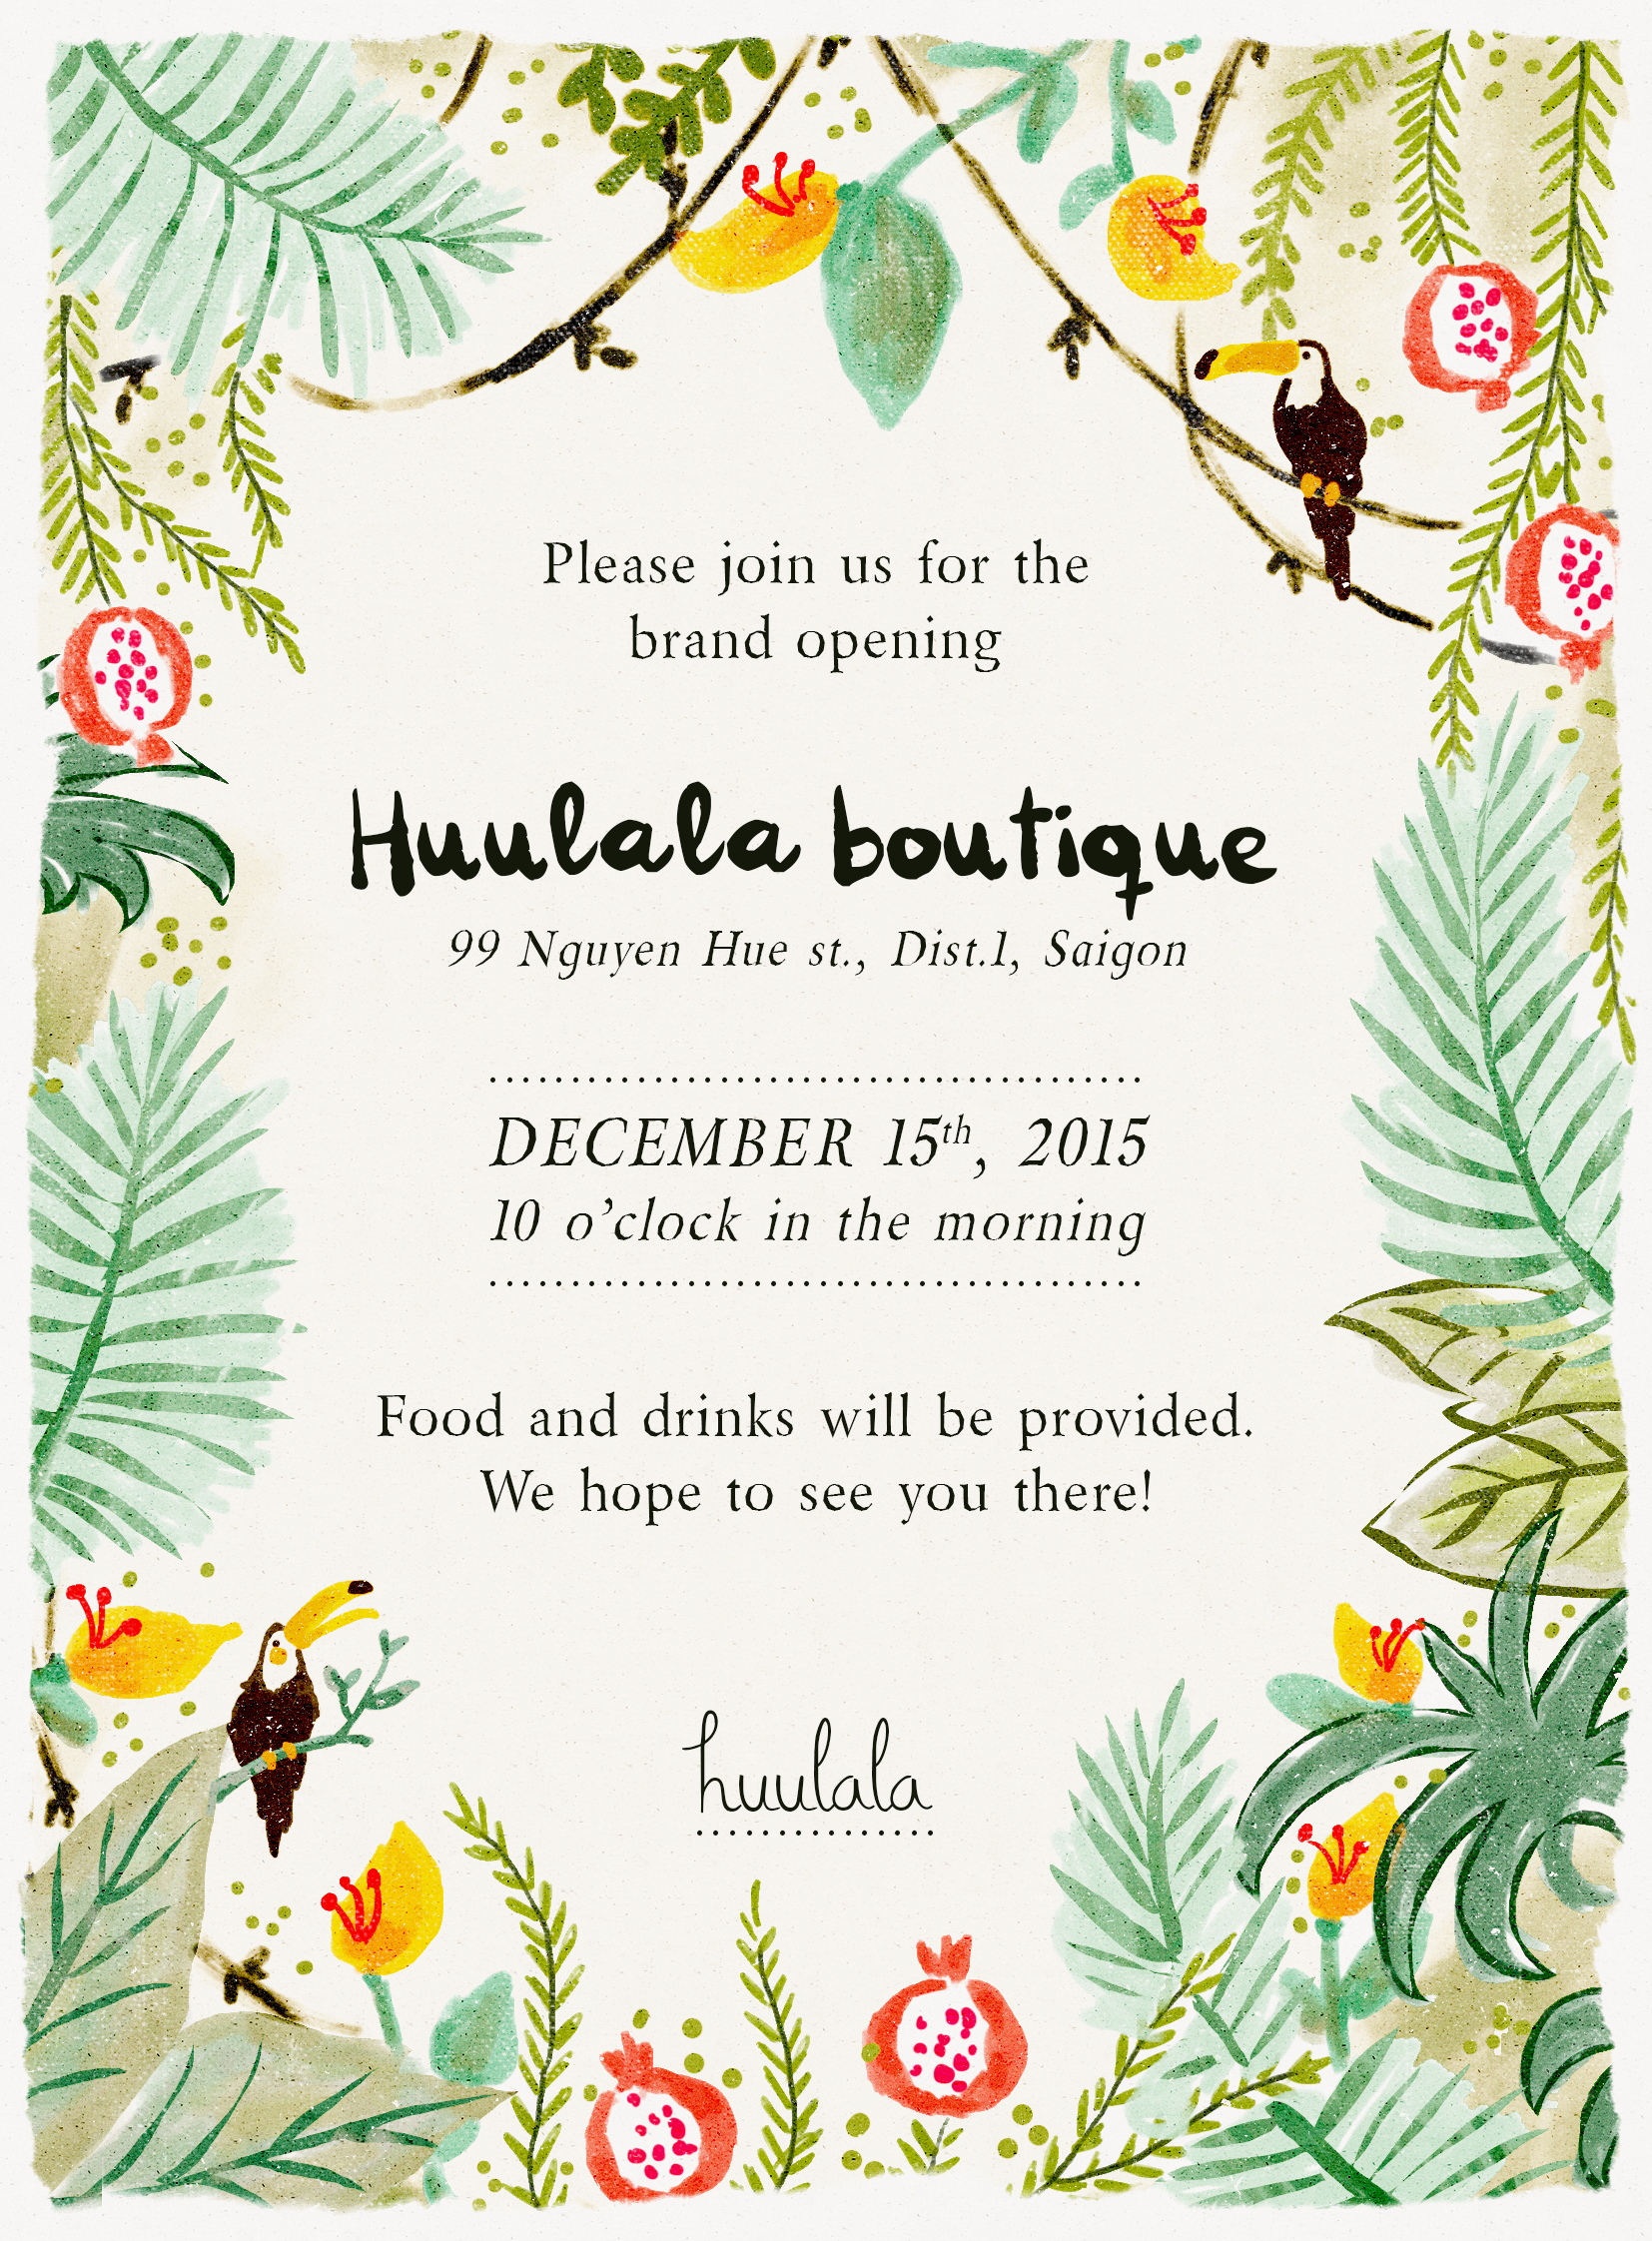 Huulala Grand Opening Invitation C Shop Opening Invitation Card Grand Opening Invitations Invitation Cards